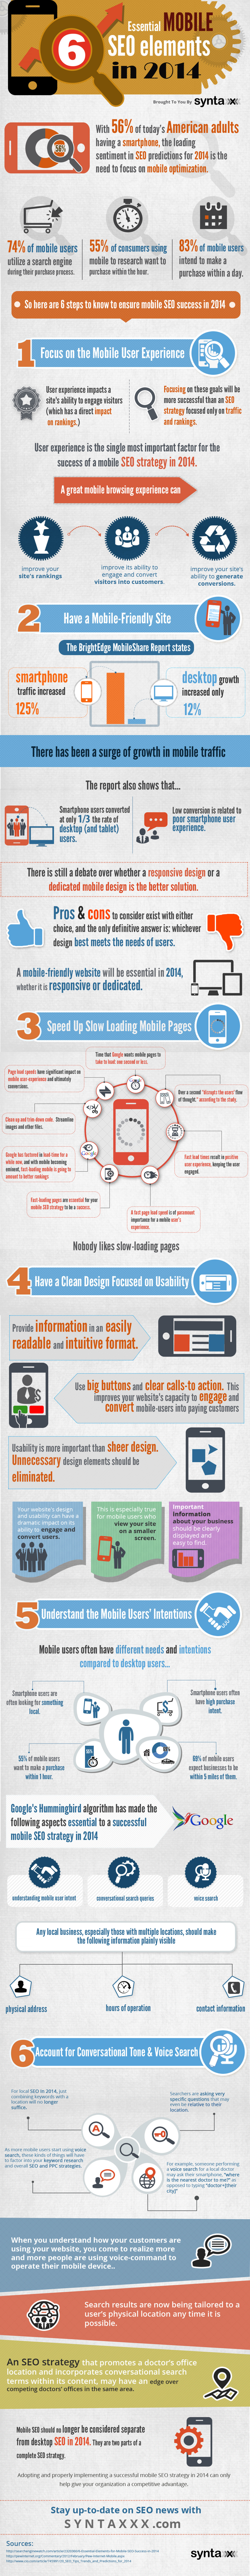 6 Essential Mobile SEO Elements in 2014 Infographic